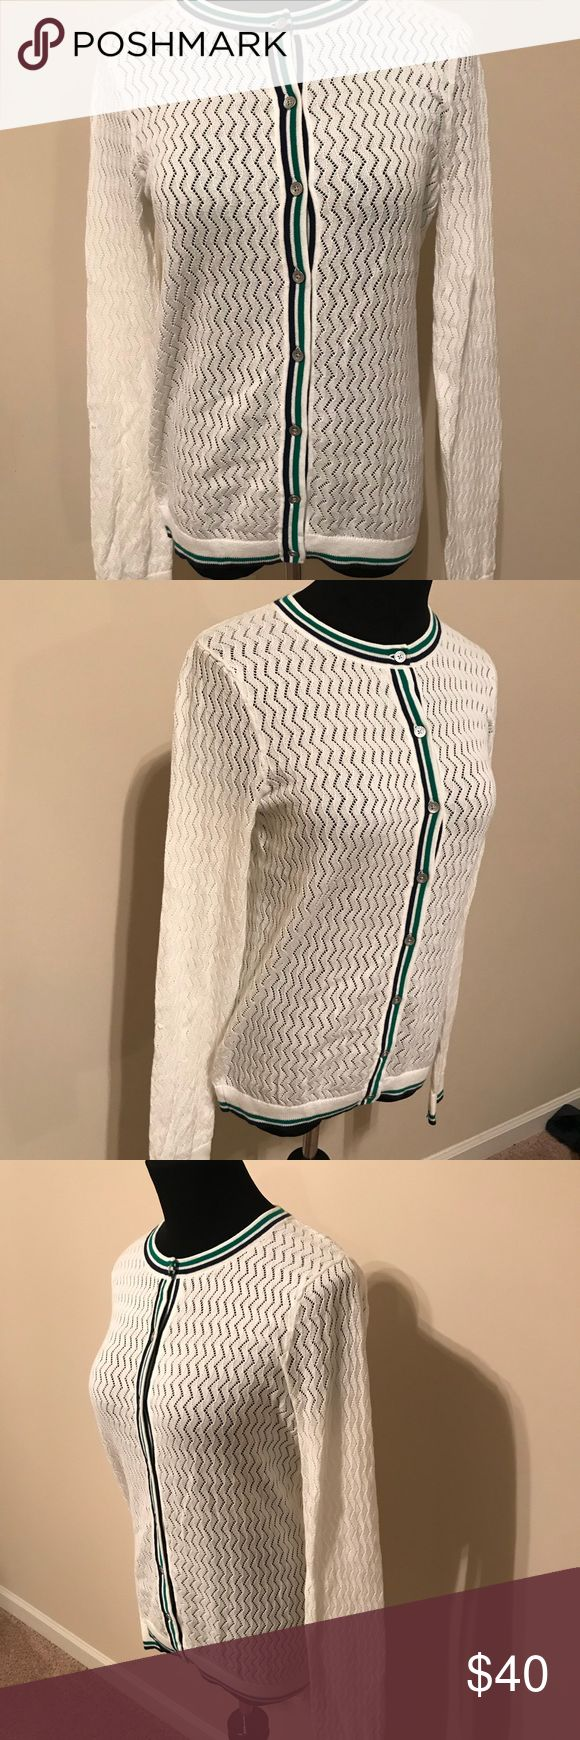 "Lands end women small cardigan sweater golf Crochet white women small suprema cotton. Blue and green stripe cuffs and hem lines. Nickel buttons. Never worn.   Pit to pit 17"" Length 23"" Sleeve 26""  Golf, tennis, sweater, cardigan, preppy, country club, polo Lands' End Sweaters Cardigans"